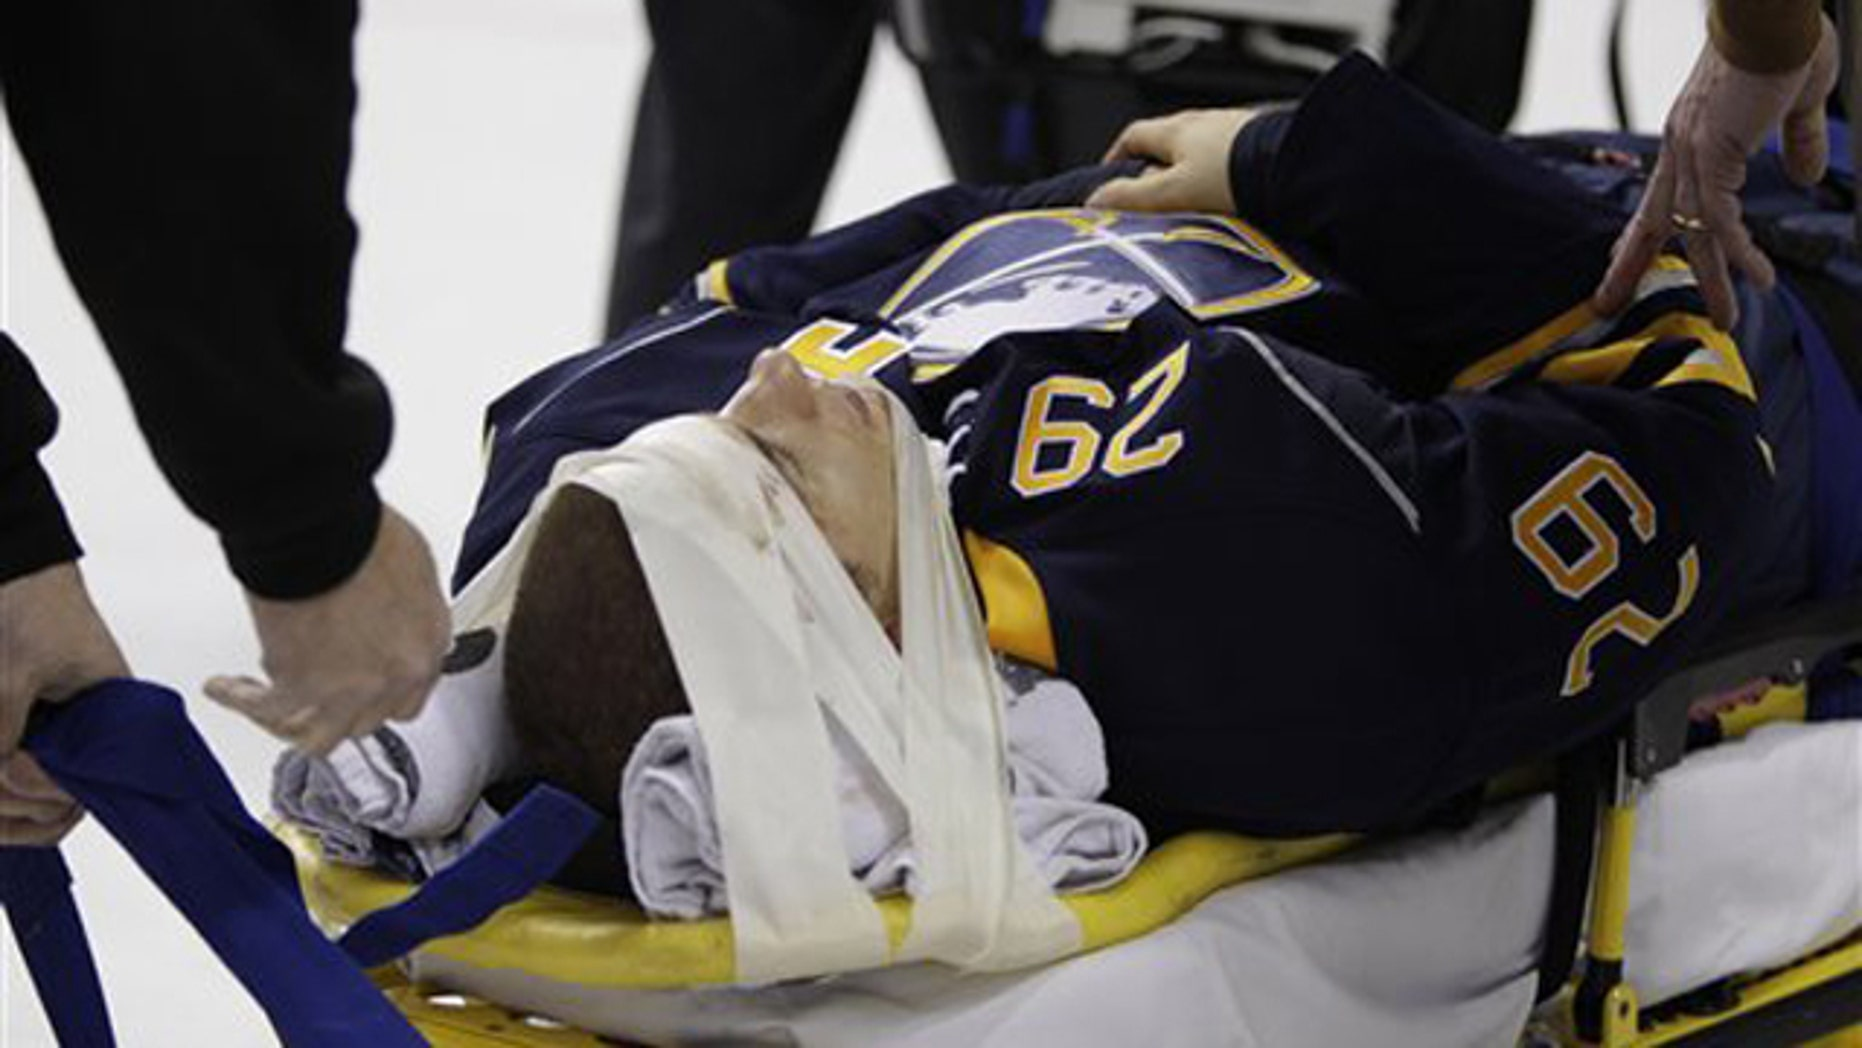 In this Oct. 11, 2010, file photo Buffalo Sabres' Jason Pominville is carted off the ice after a hit which resulted in a gash above his eye and a concussion during an NHL hockey game against the Chicago Blackhawks in Buffalo, N.Y.